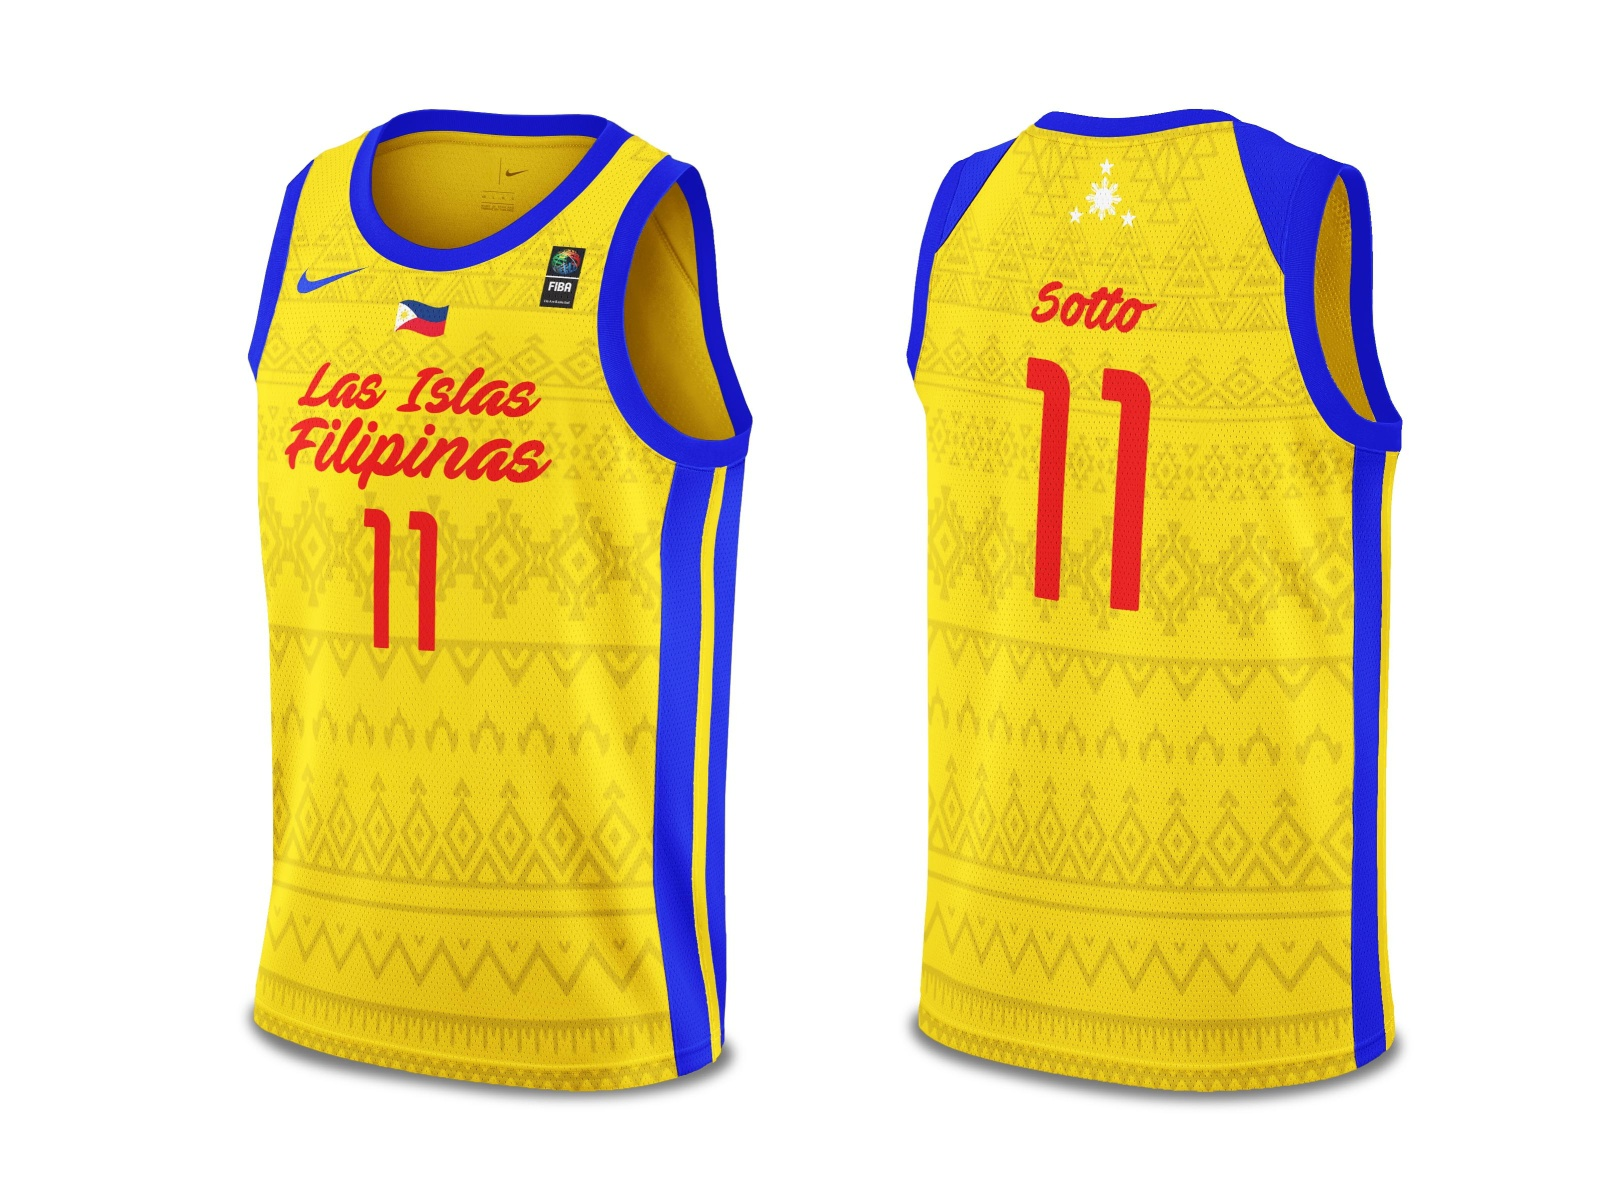 2020 21 Gilas Pilipinas City Edition Away Jersey By Jp